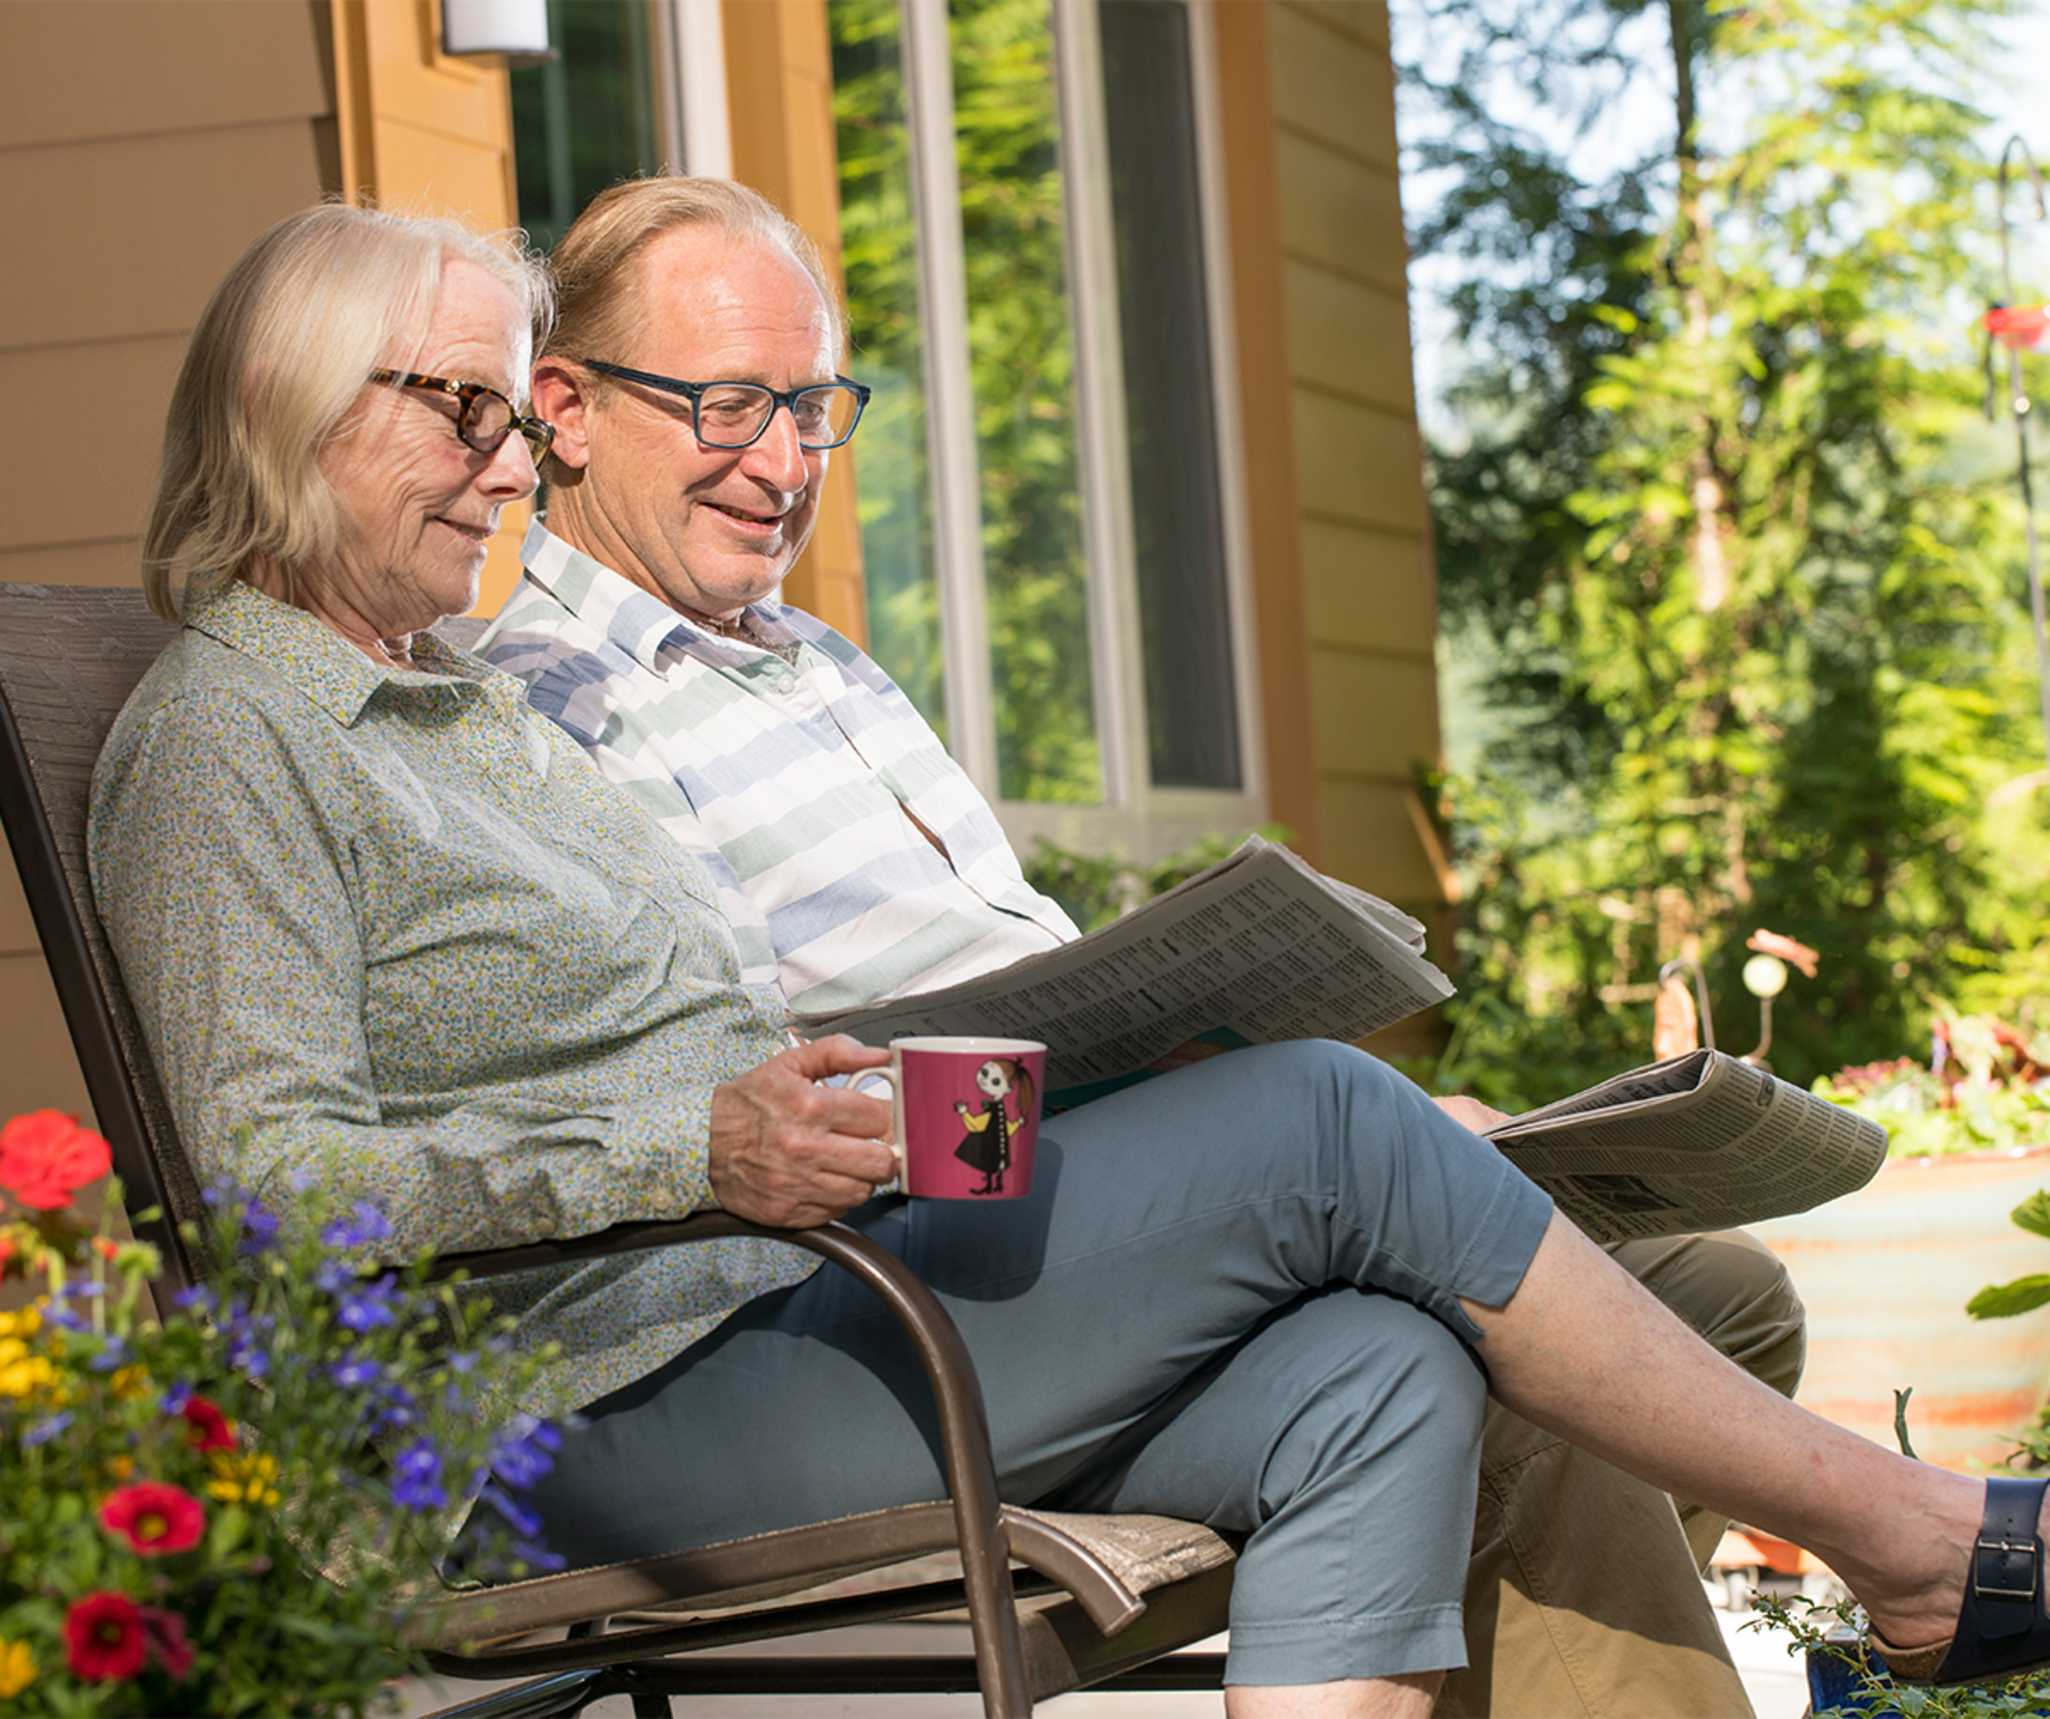 two seniors enjoy research for their senior living community